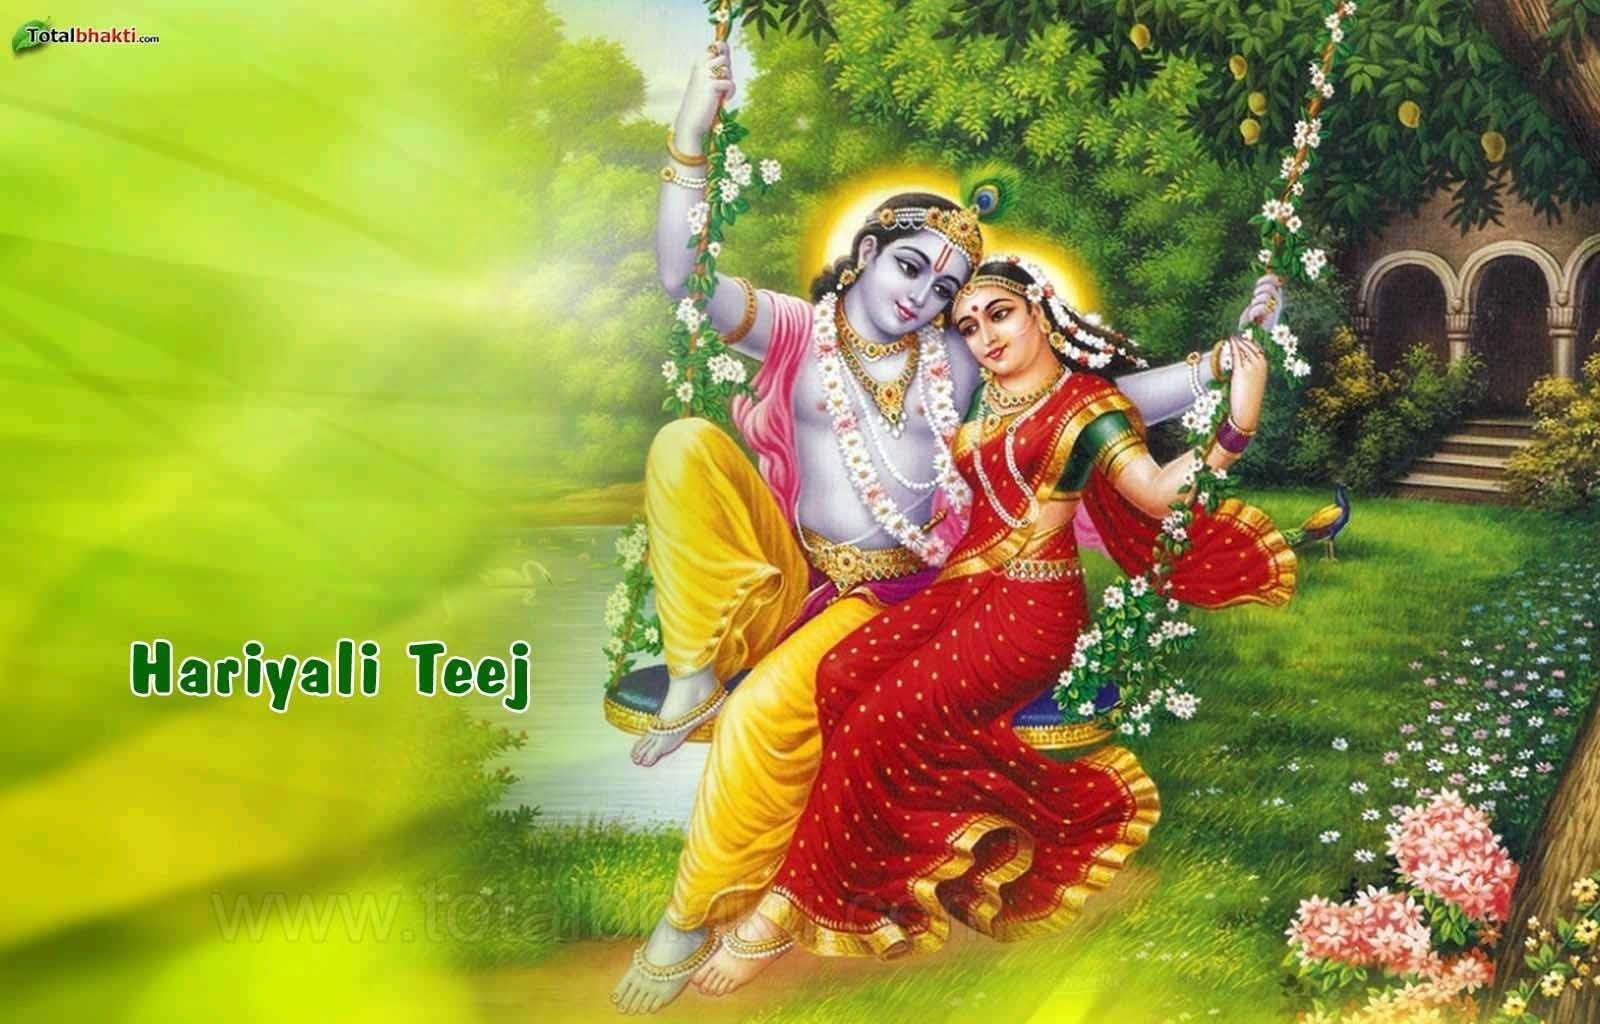 hariyali teej radha krishna green color hd wallpapers facebook whatsapp